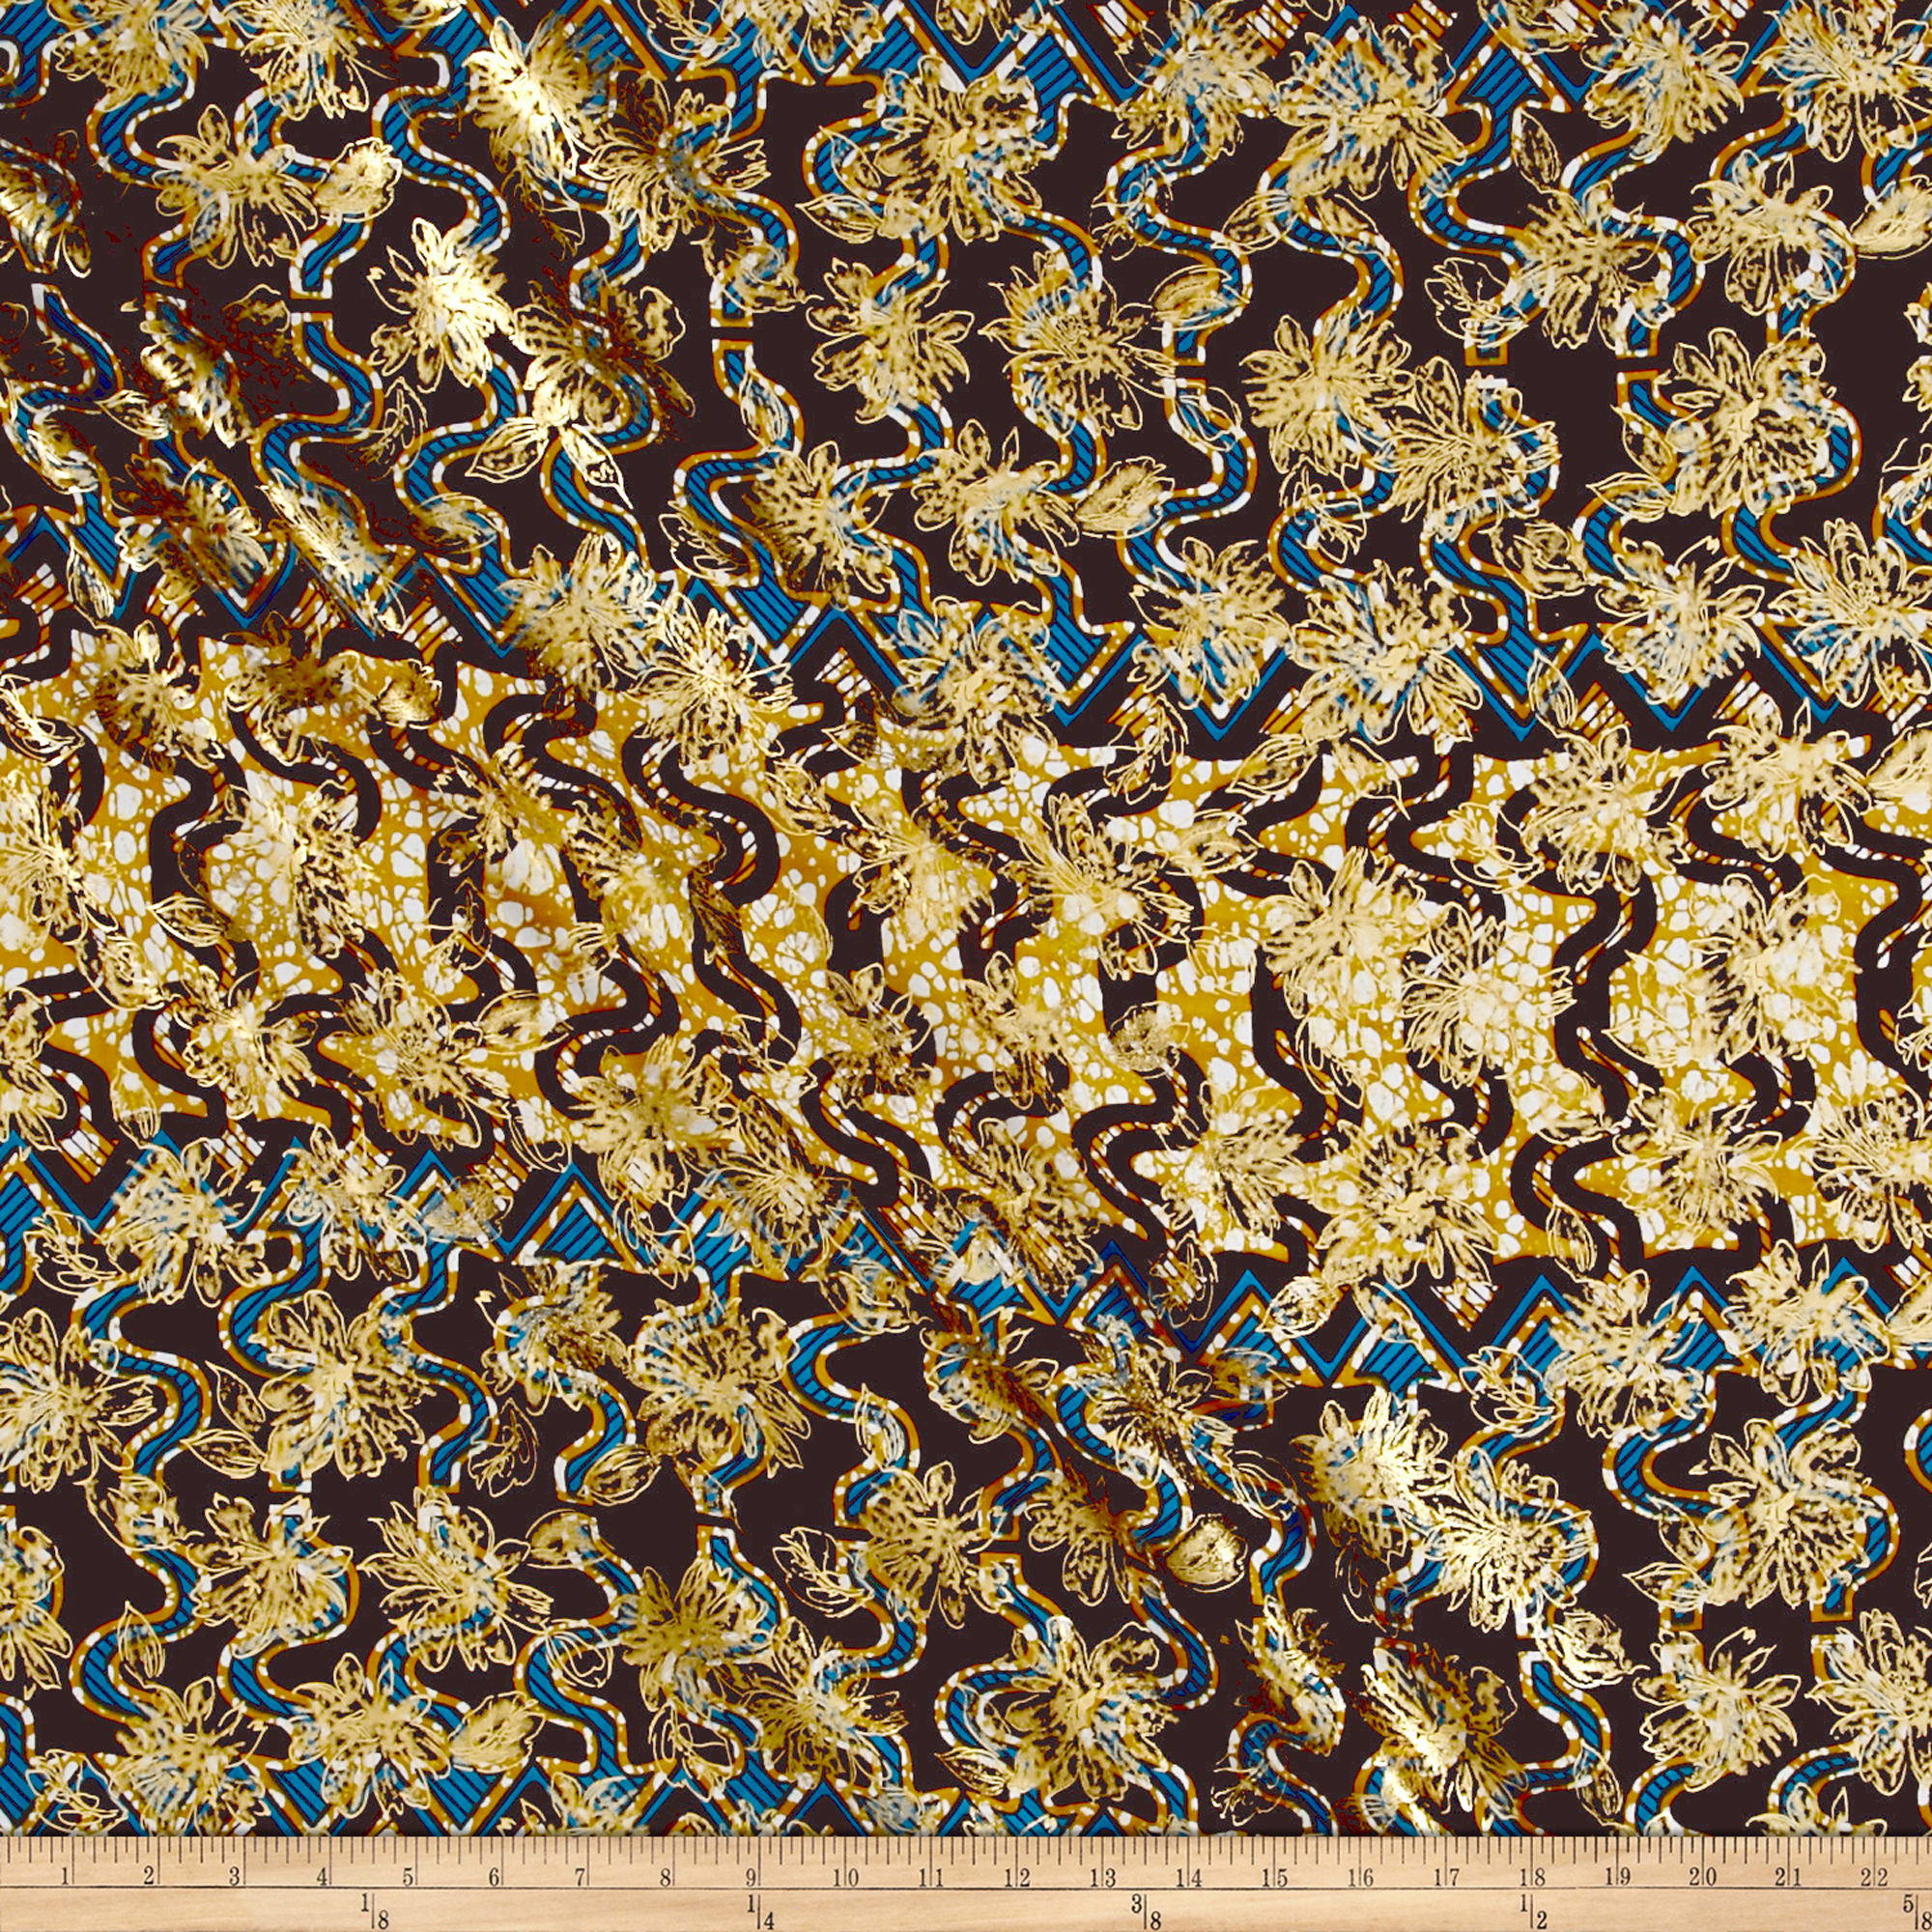 Supreme Osikani African Print Broadcloth 6 Yard Metallic Blue Arrow